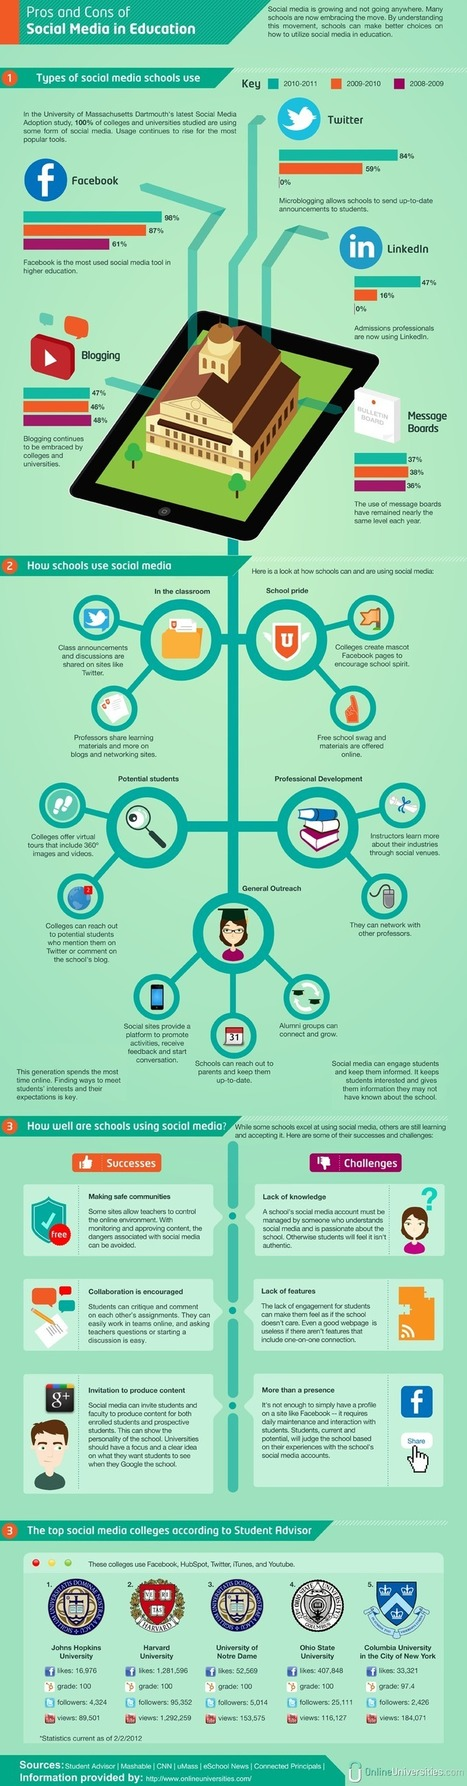 Pros and Cons of Social Media in Education, INFOGRAPHIC > | :: The 4th Era :: | Scoop.it